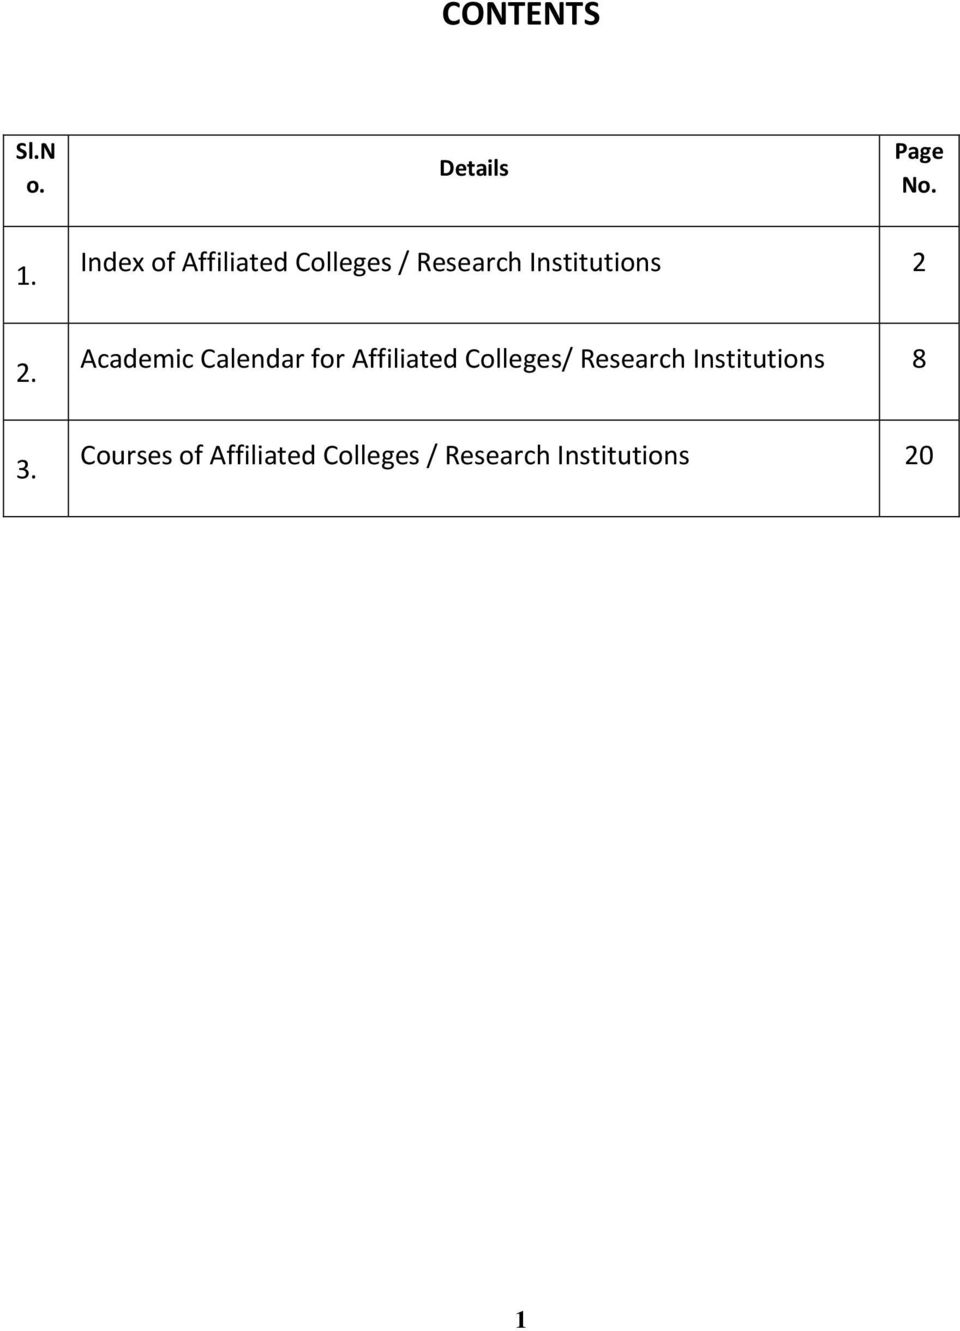 2. Academic Calendar for Affiliated Colleges/ Research